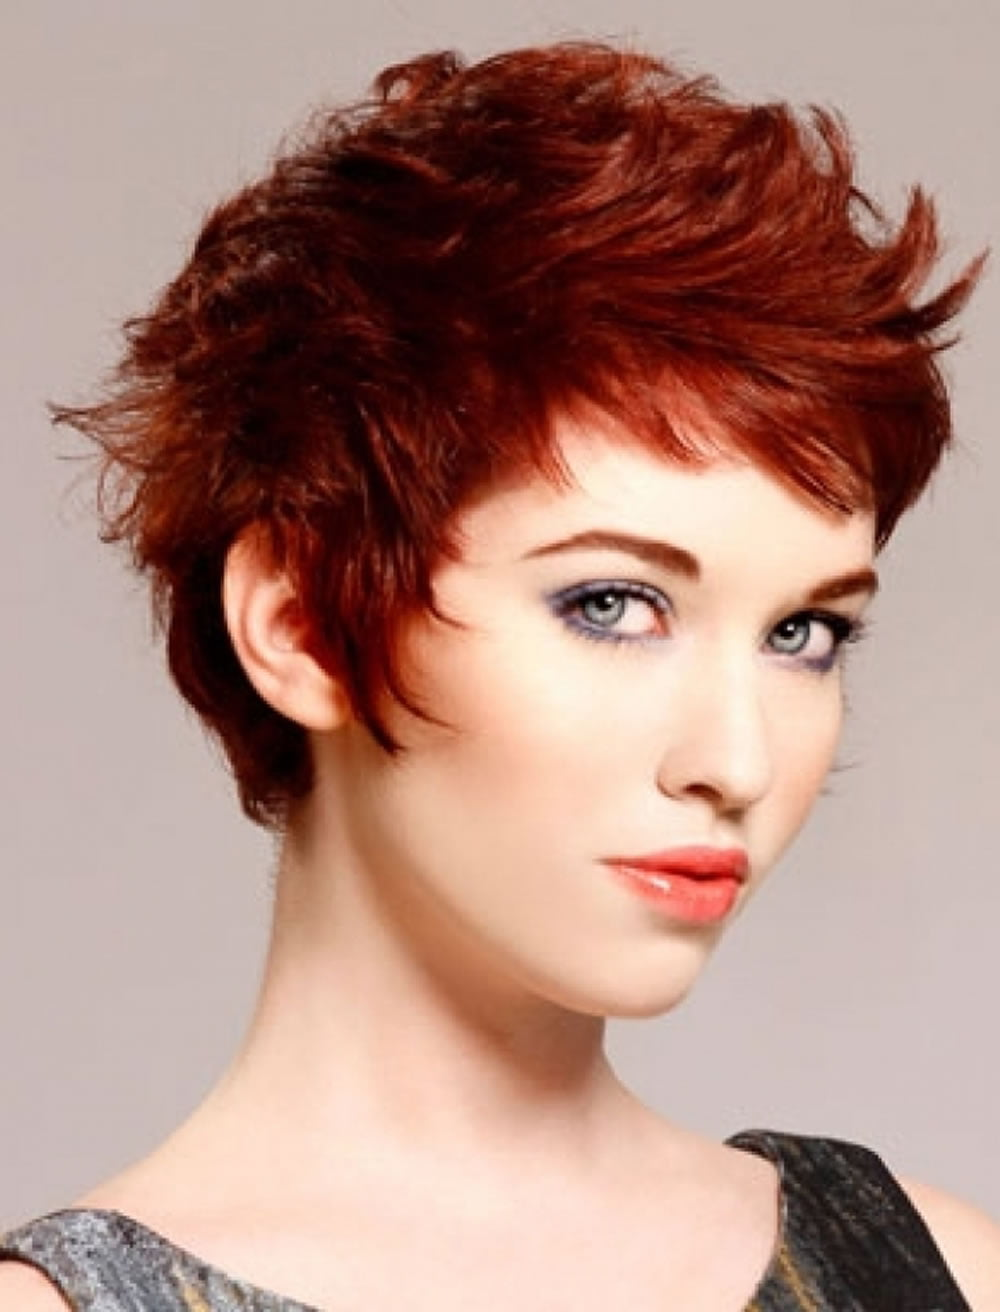 haircuts for short hair ladies hair color for hairstyles 27 cool haircut 6199 | Magnificent Short Messy Haircuts Red Hair Color for Women 2017